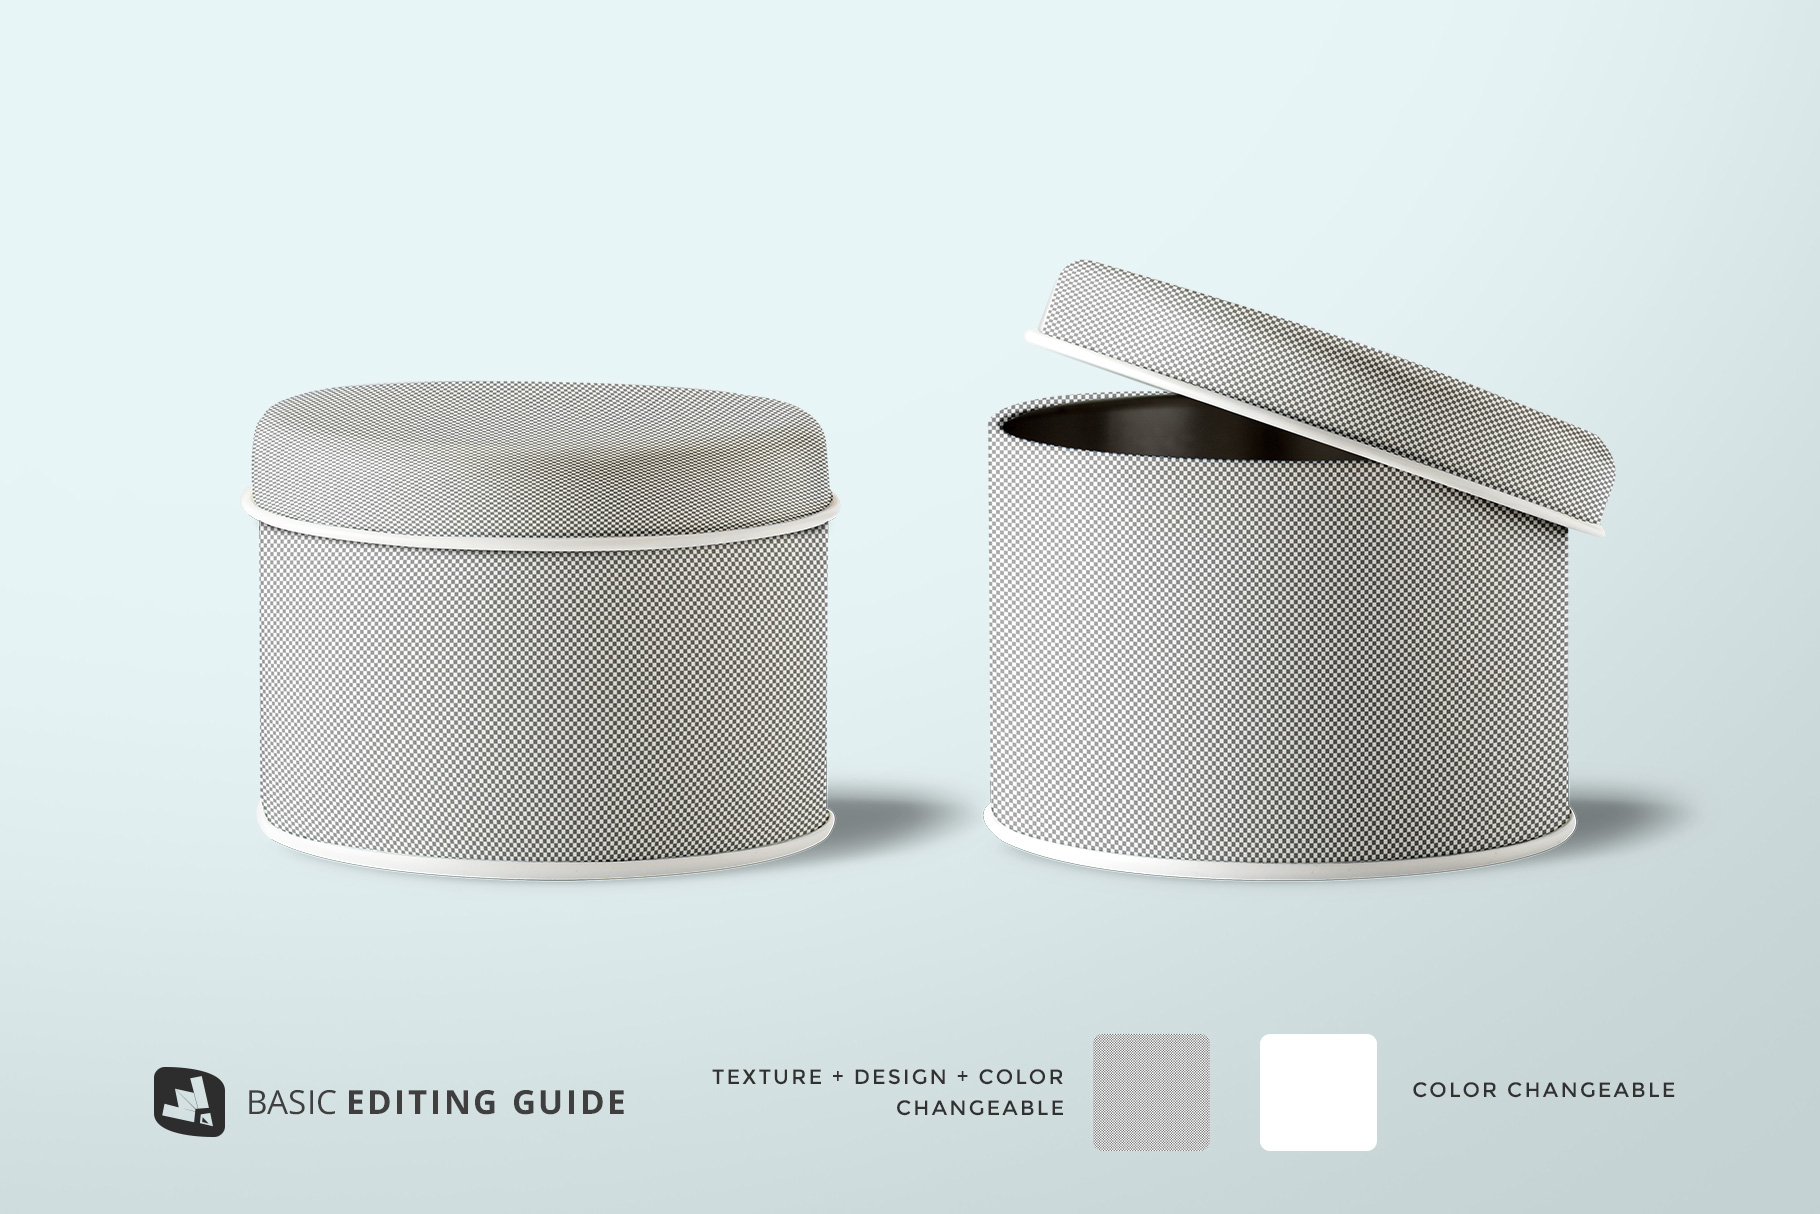 ediatbility of the front view cylindrical container mockup